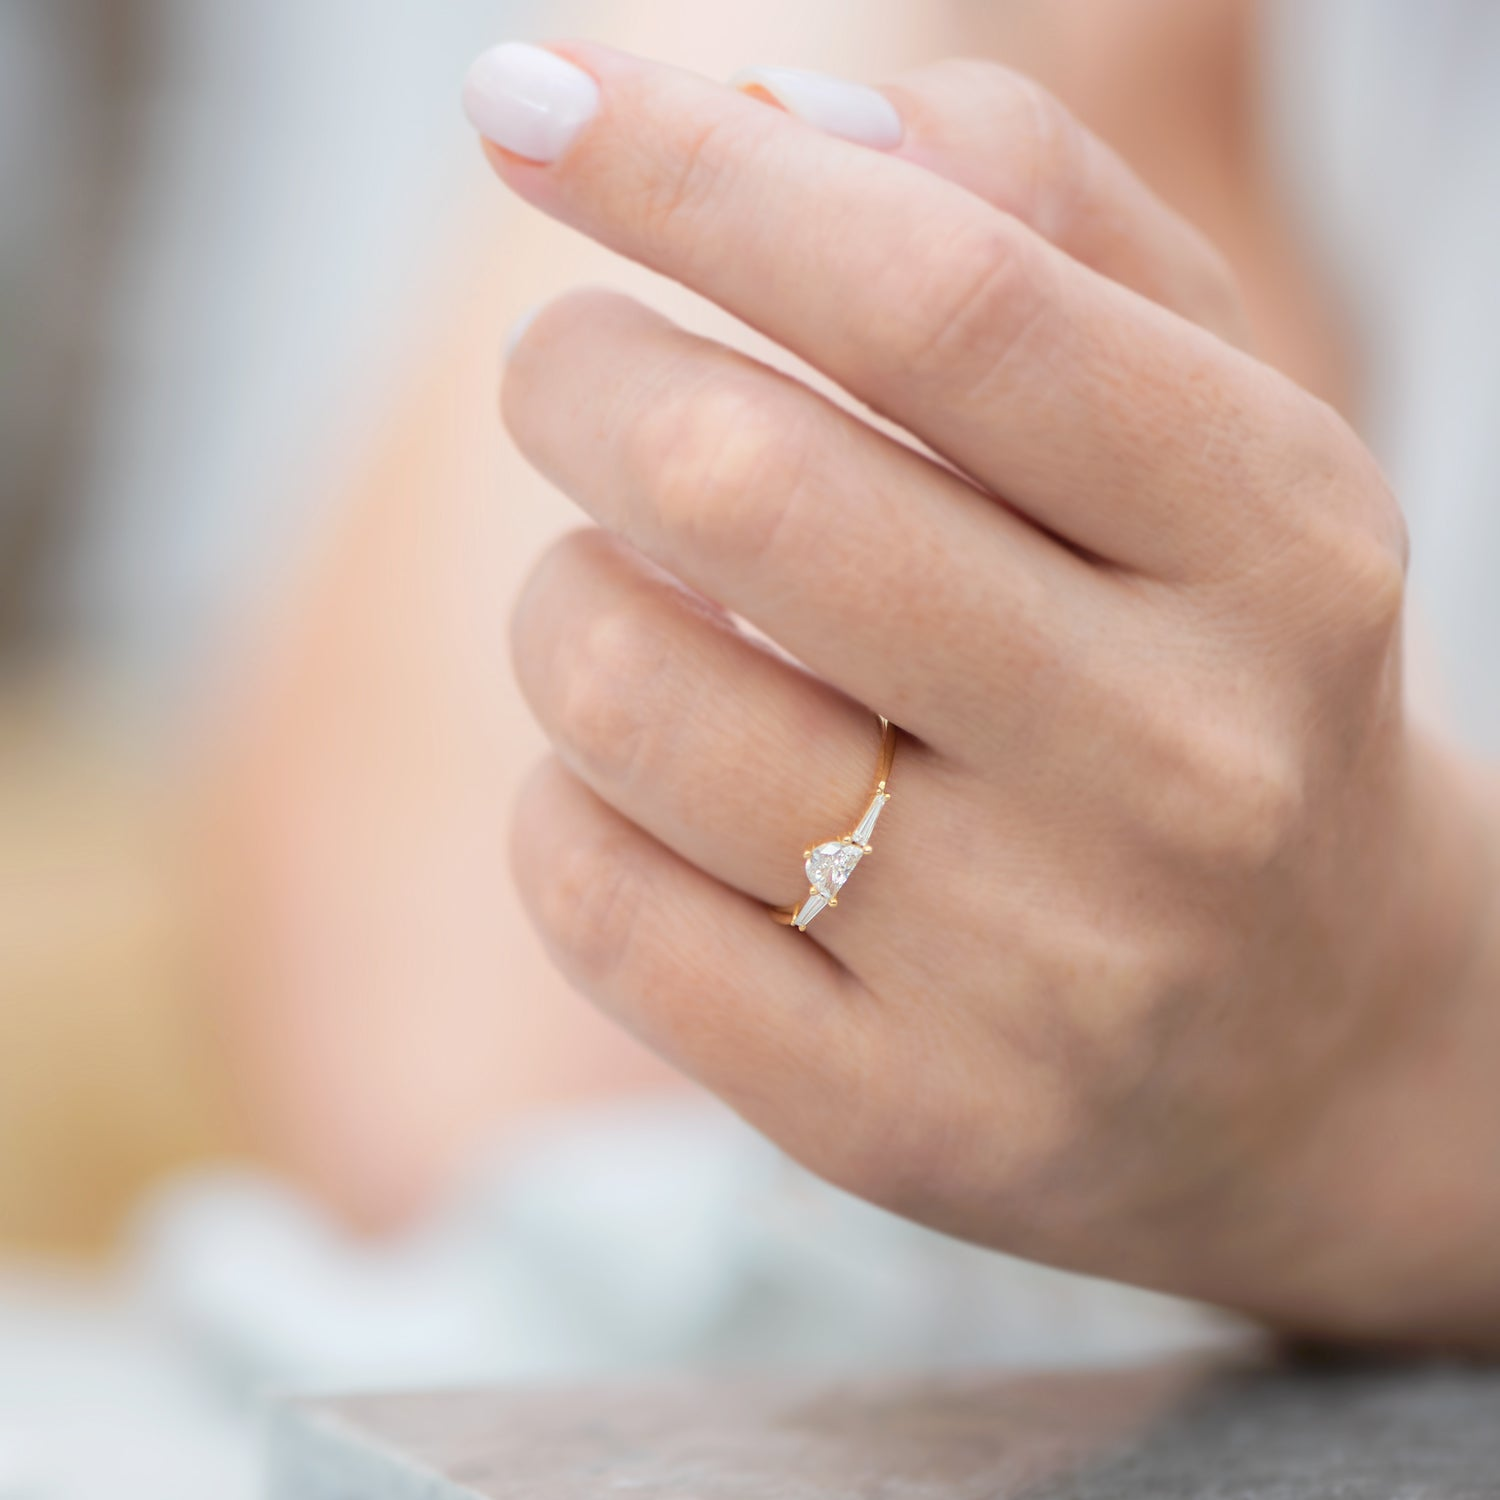 Three-Stone-Engagement-Ring-with-Half-Moon-and-Baguette-Cut-Diamonds-on-hand